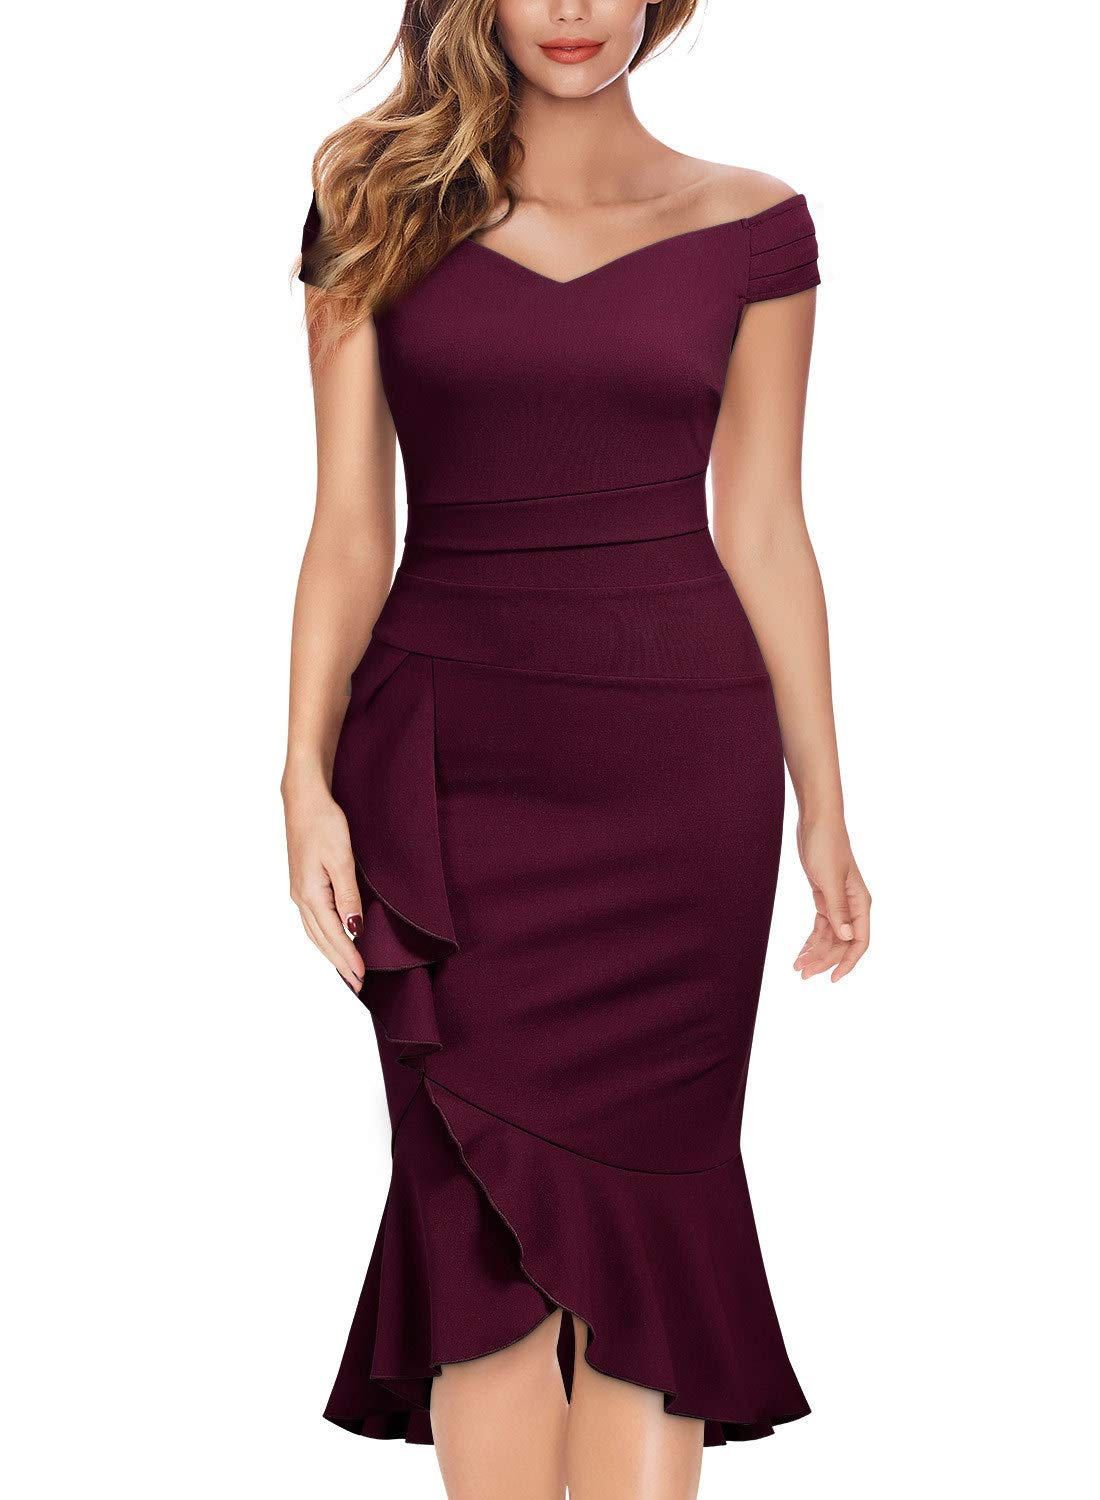 Party Dresses - Women's Off Shoulder V-Neck Ruffle Pleat Waist Bodycon Evening Cocktail Slit Formal Dress